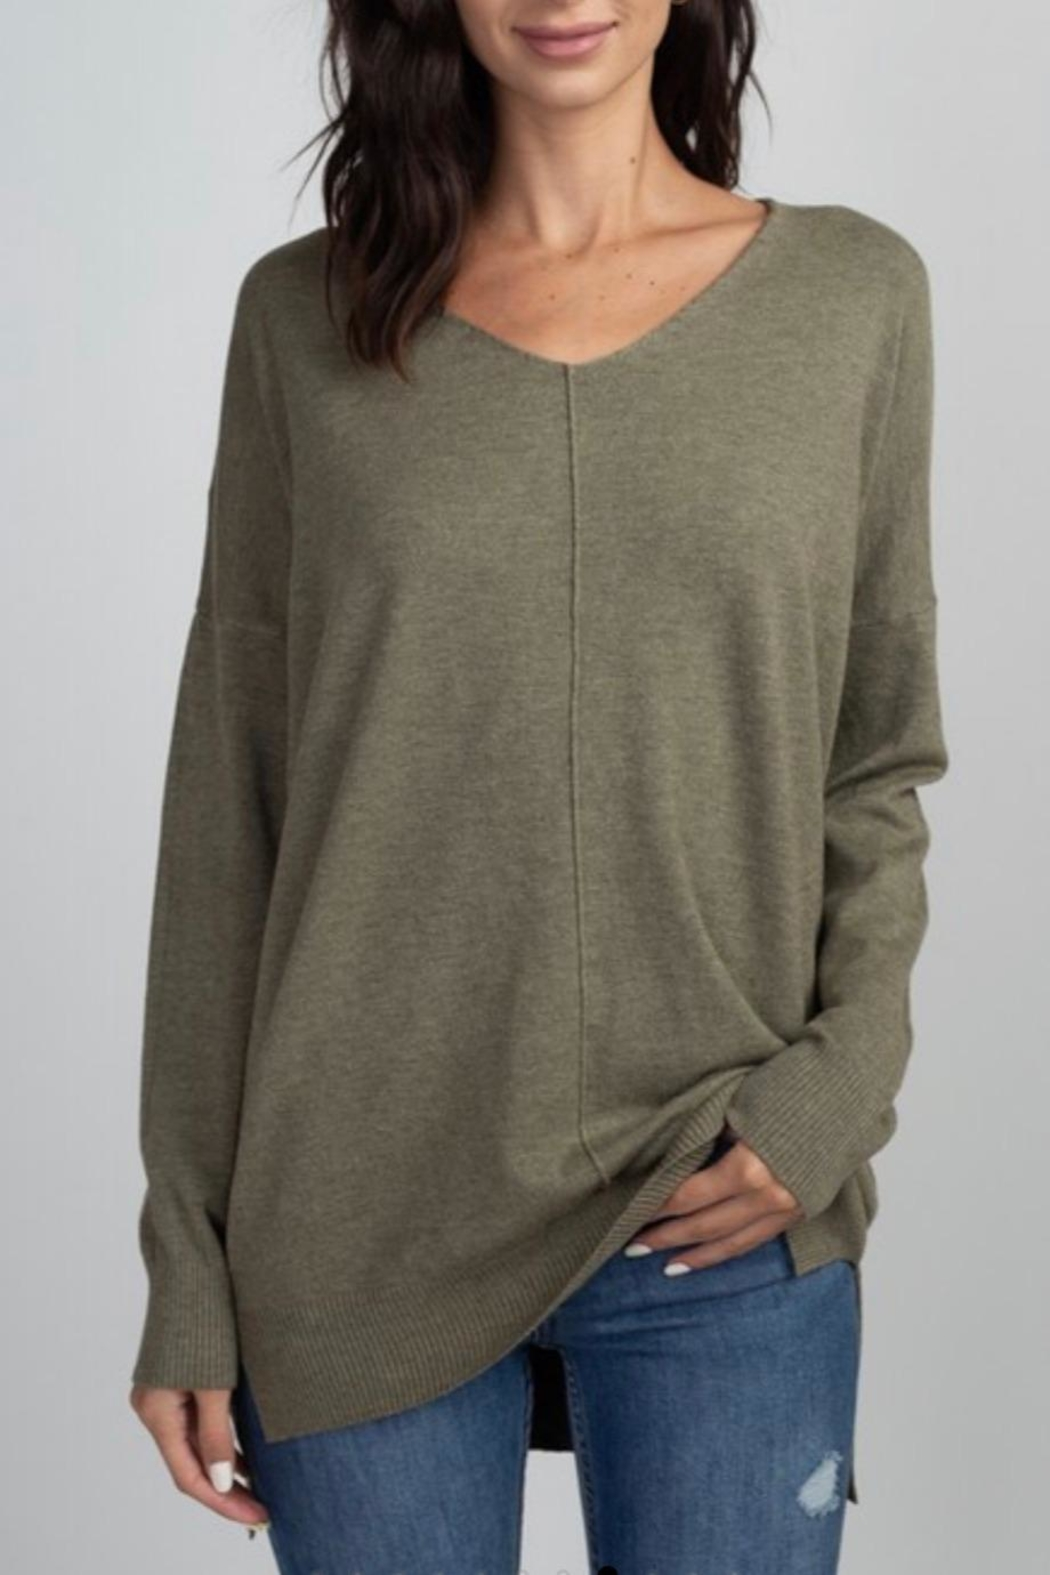 Dreamers Olive Soft Sweater - Main Image